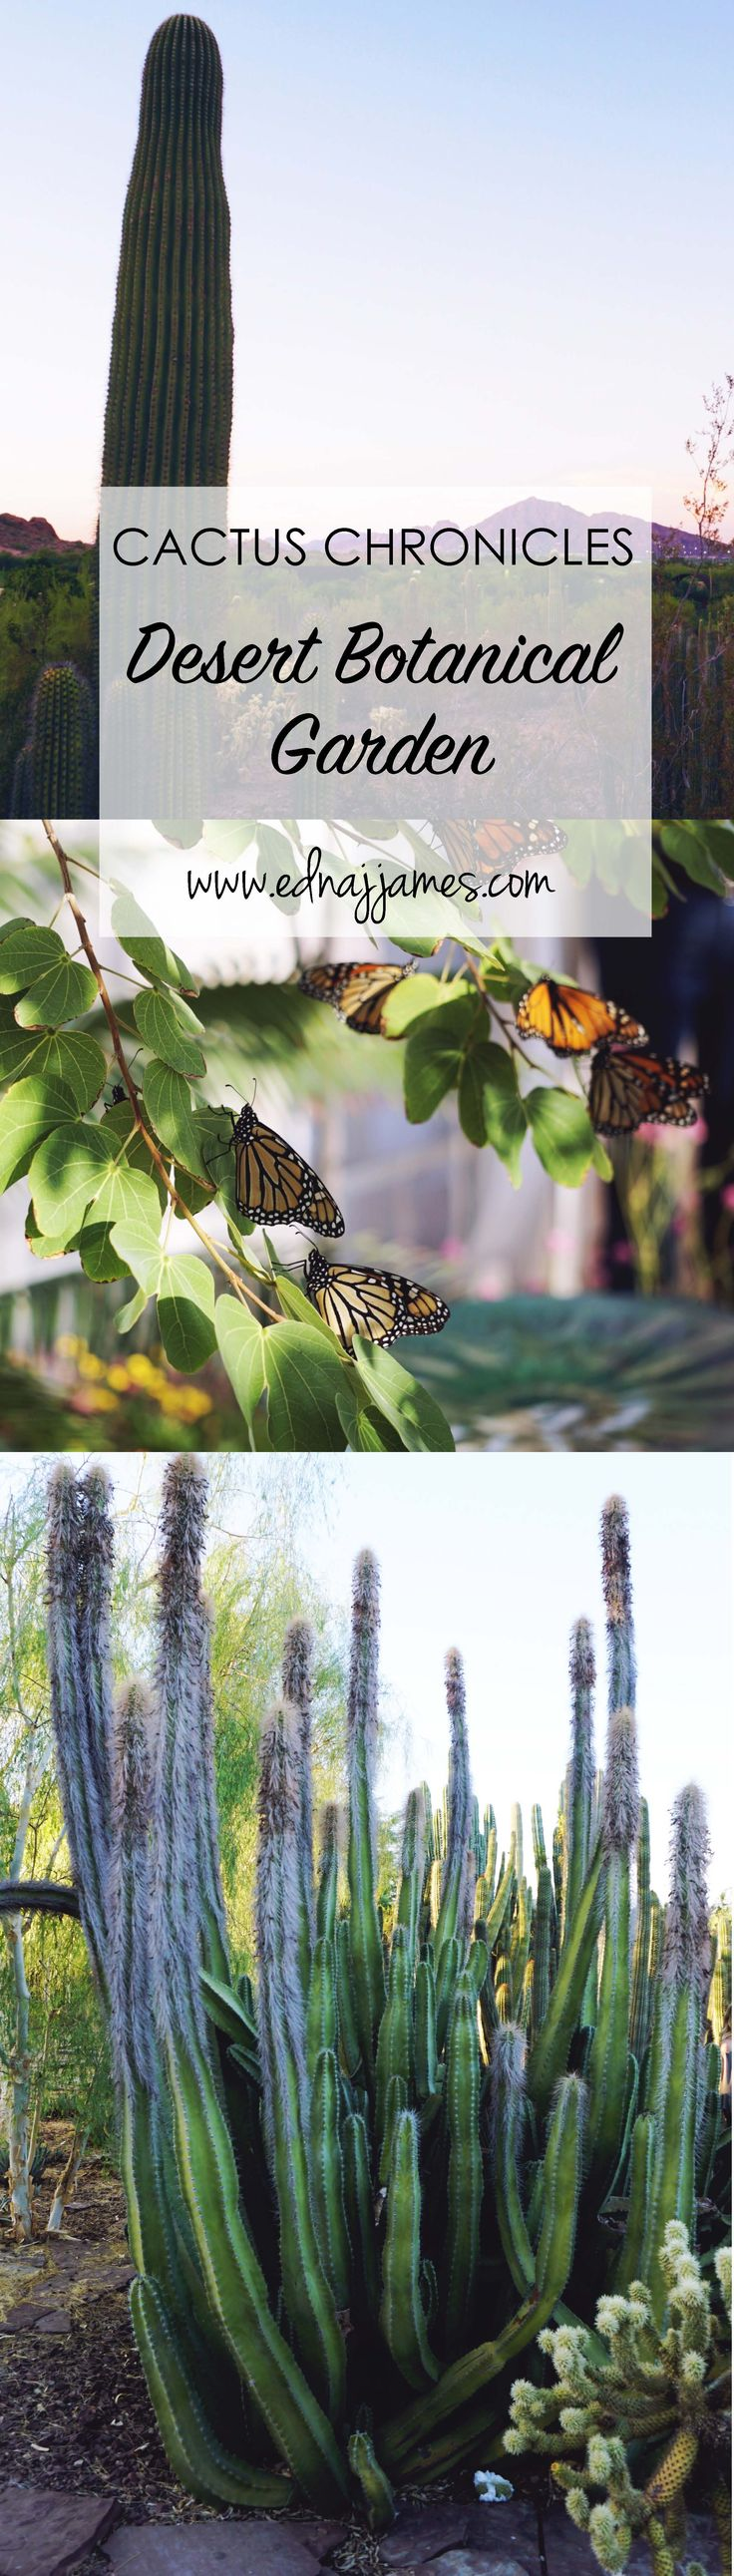 CACTUS CHRONICLES- Desert Botanical Garden!  We talk about one of our favorite places to visit in AZ!  http://www.ednajjames.com/cactus-chronicles-desert-botanical-gardens-butterflys/